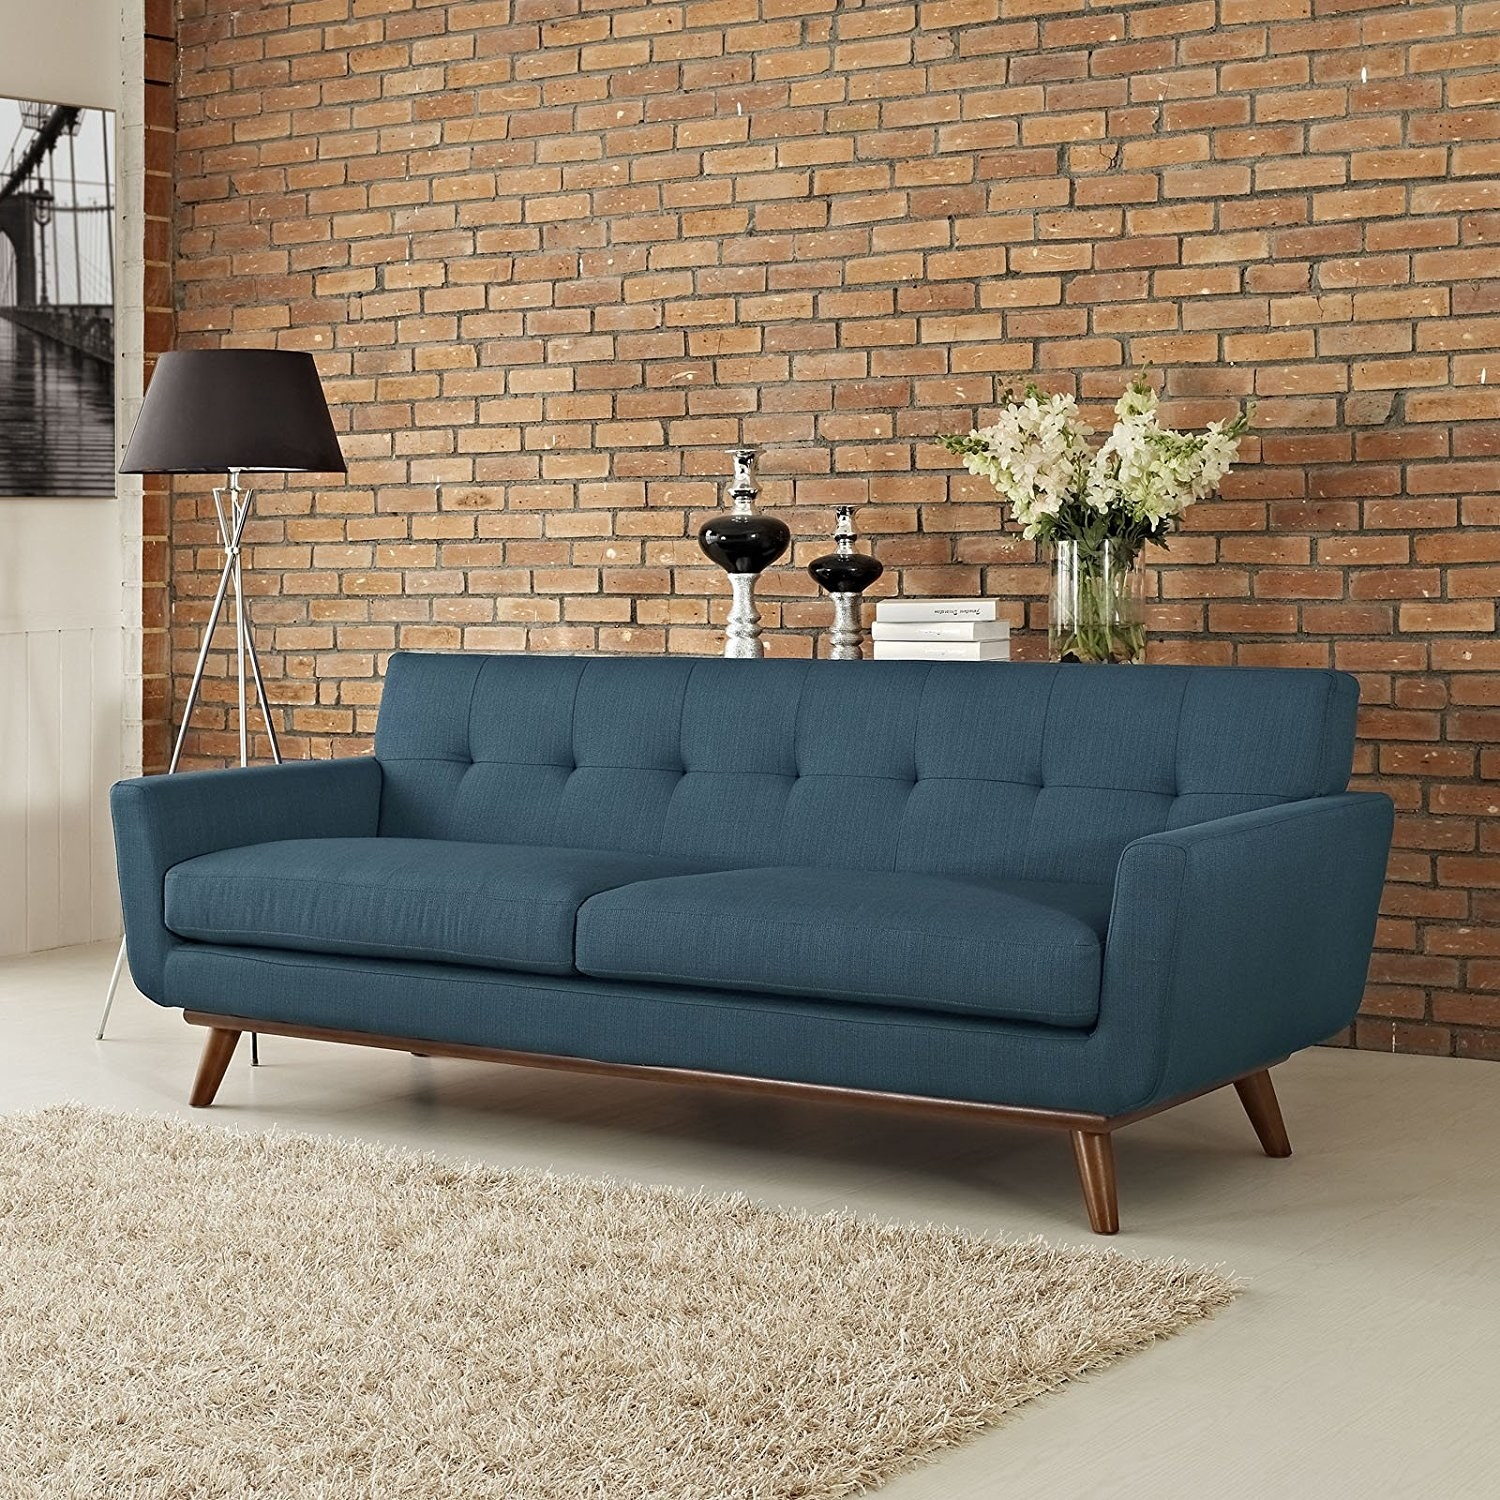 And Because You Can Never Have Too Many Classic Sofas To Choose From,  Hereu0027s Another Simple But Elegant Option.